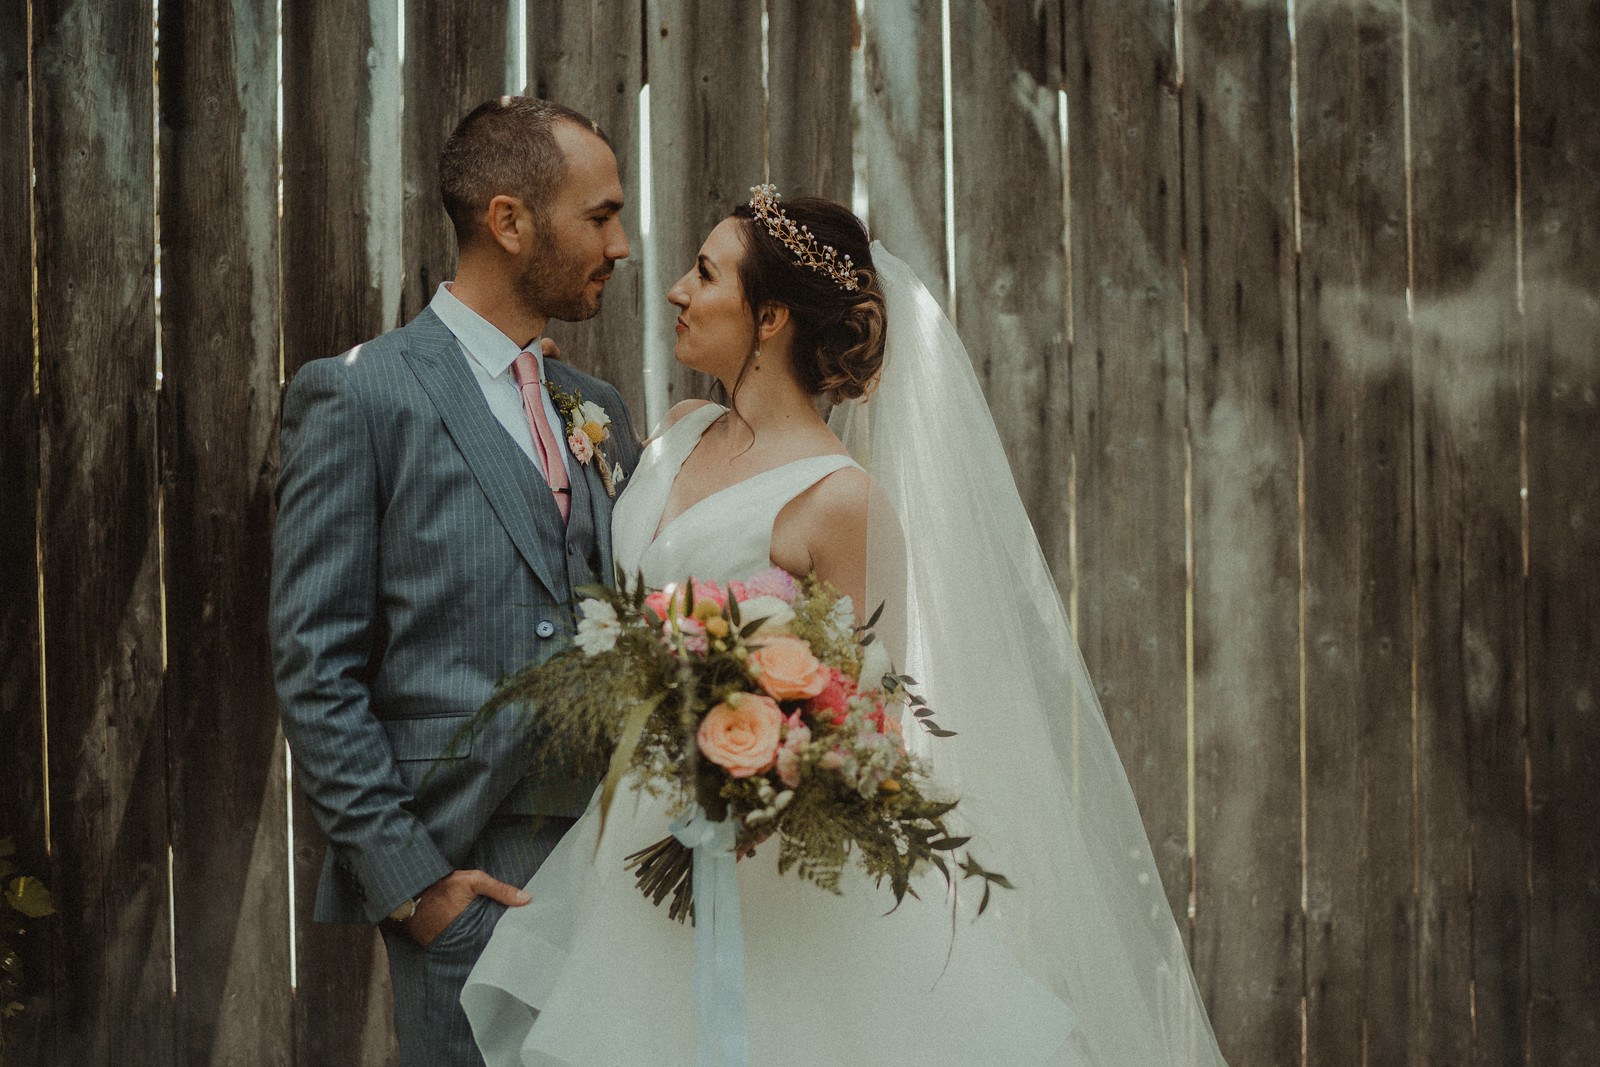 Bride and groom look into each others eyes  Wedding photo